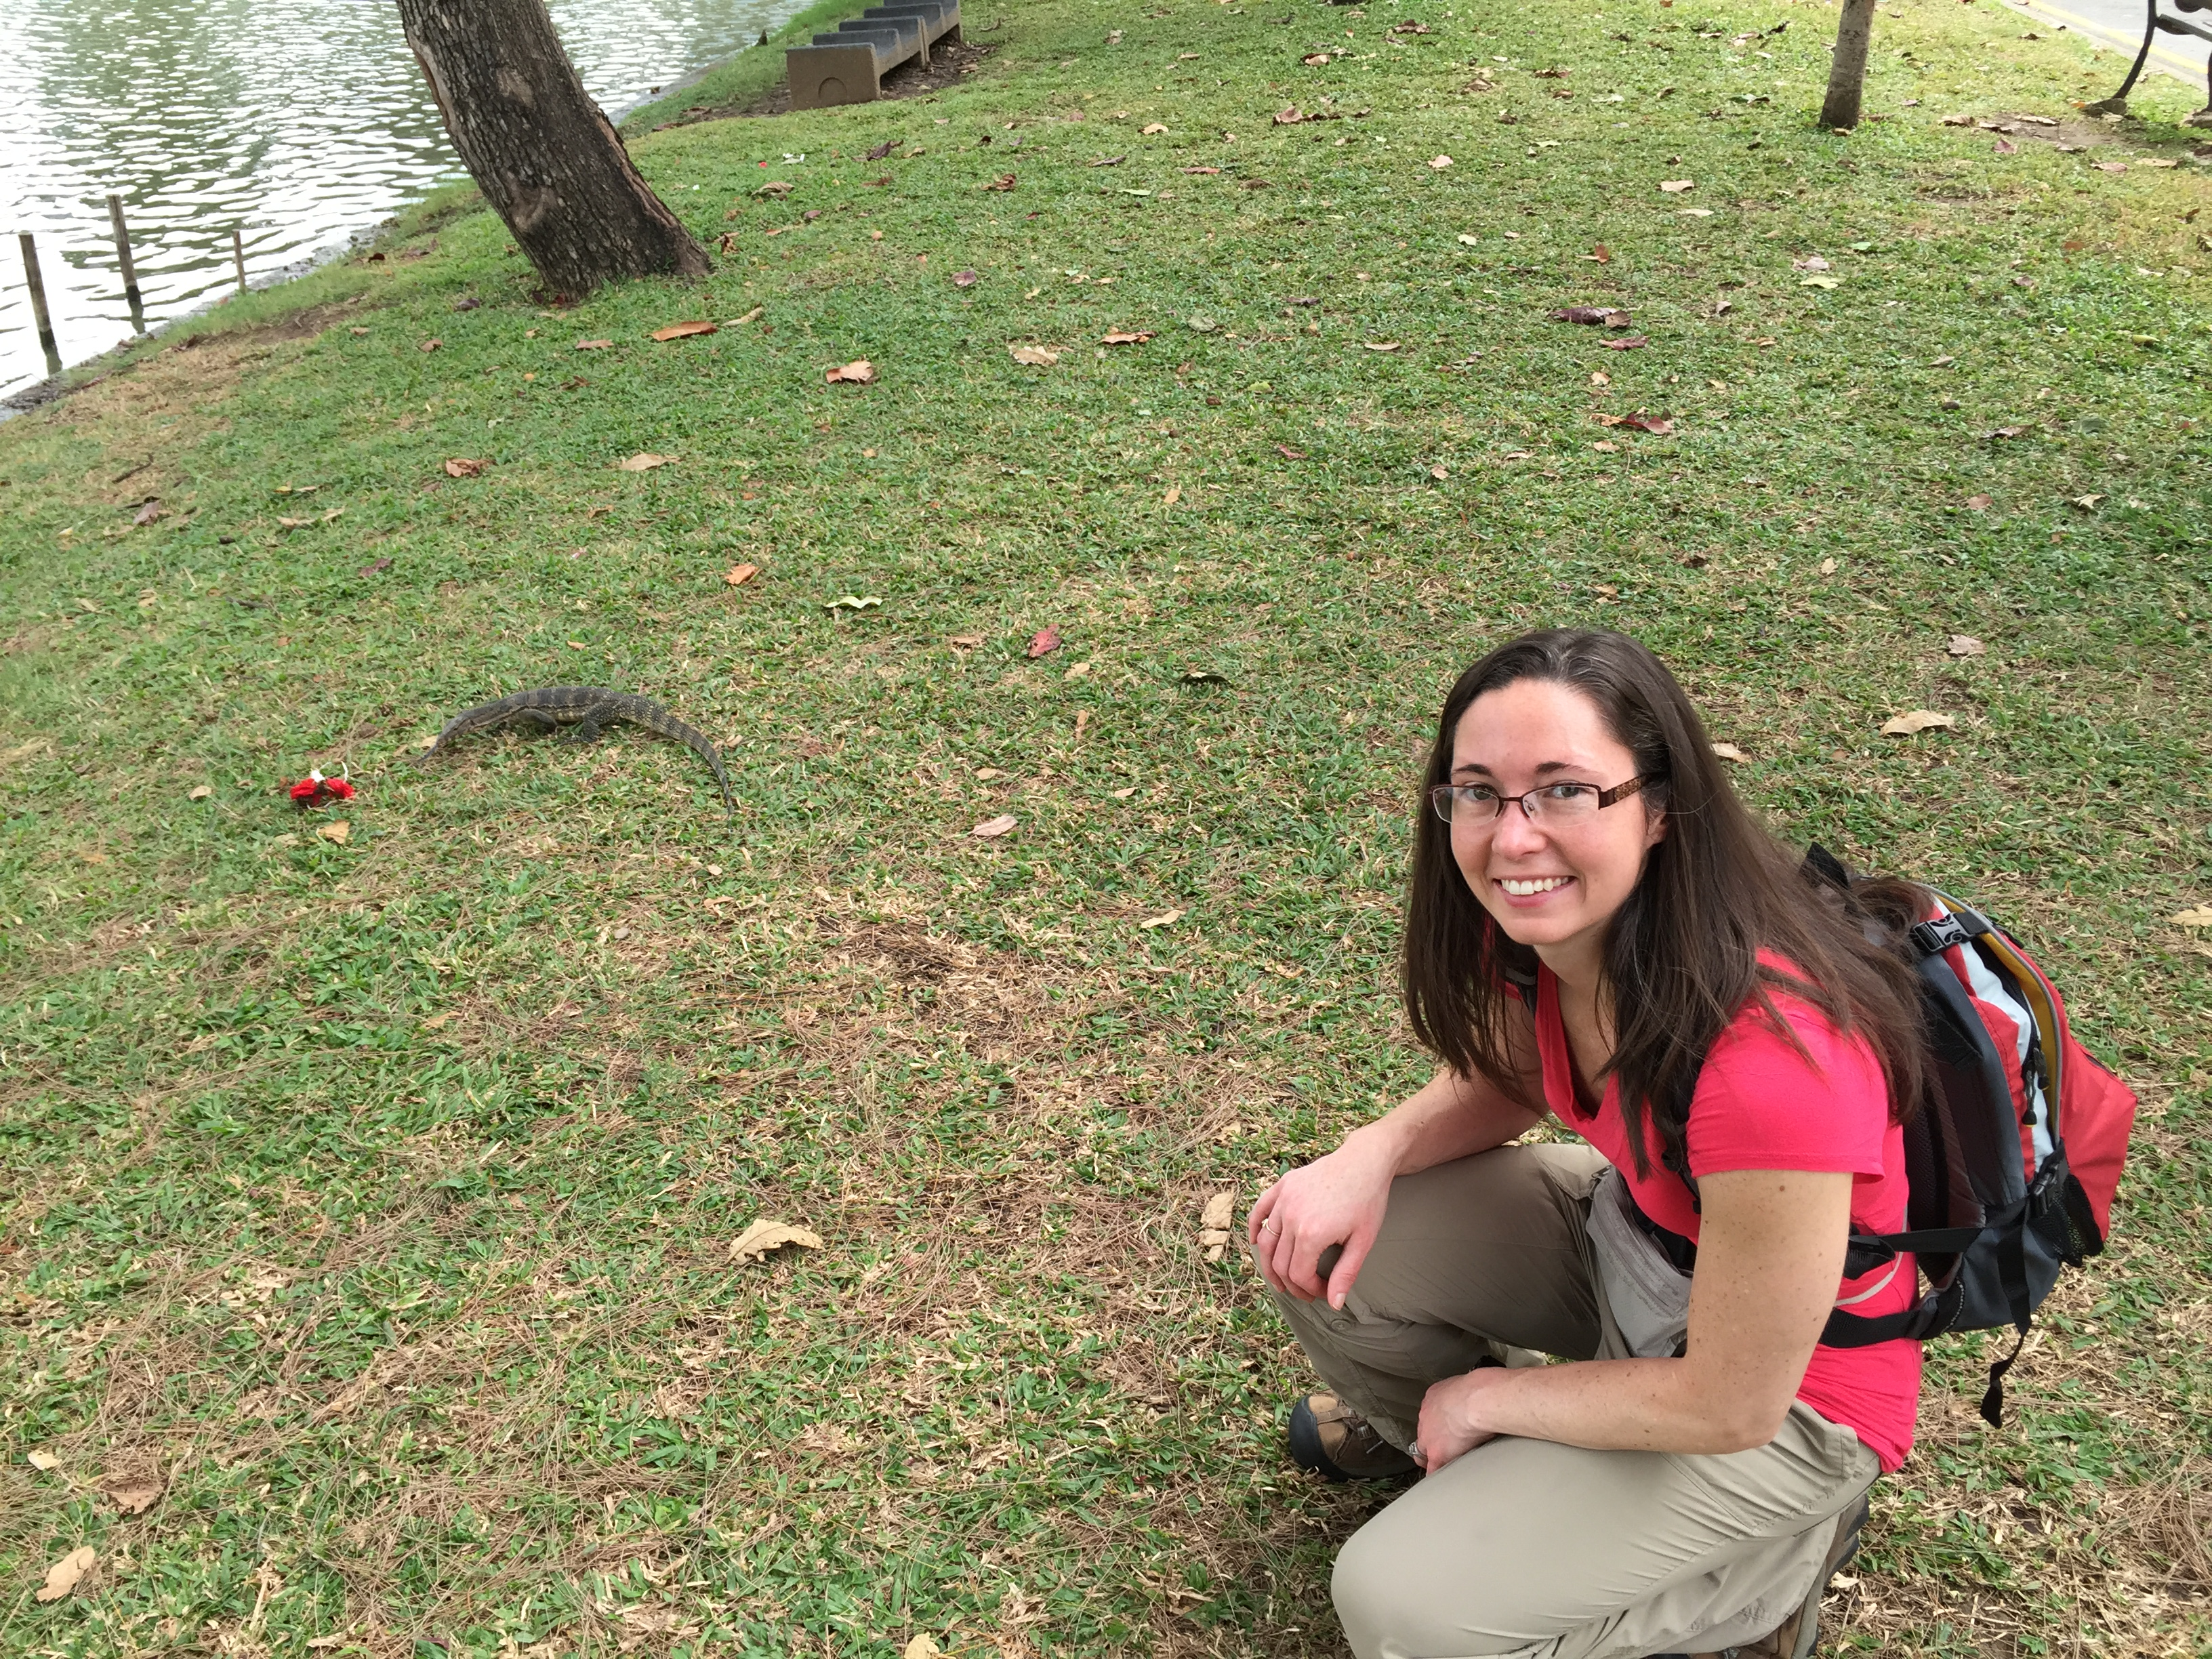 Adult female with long dark hair and glasses squatting down next to a large lizard in the grass.